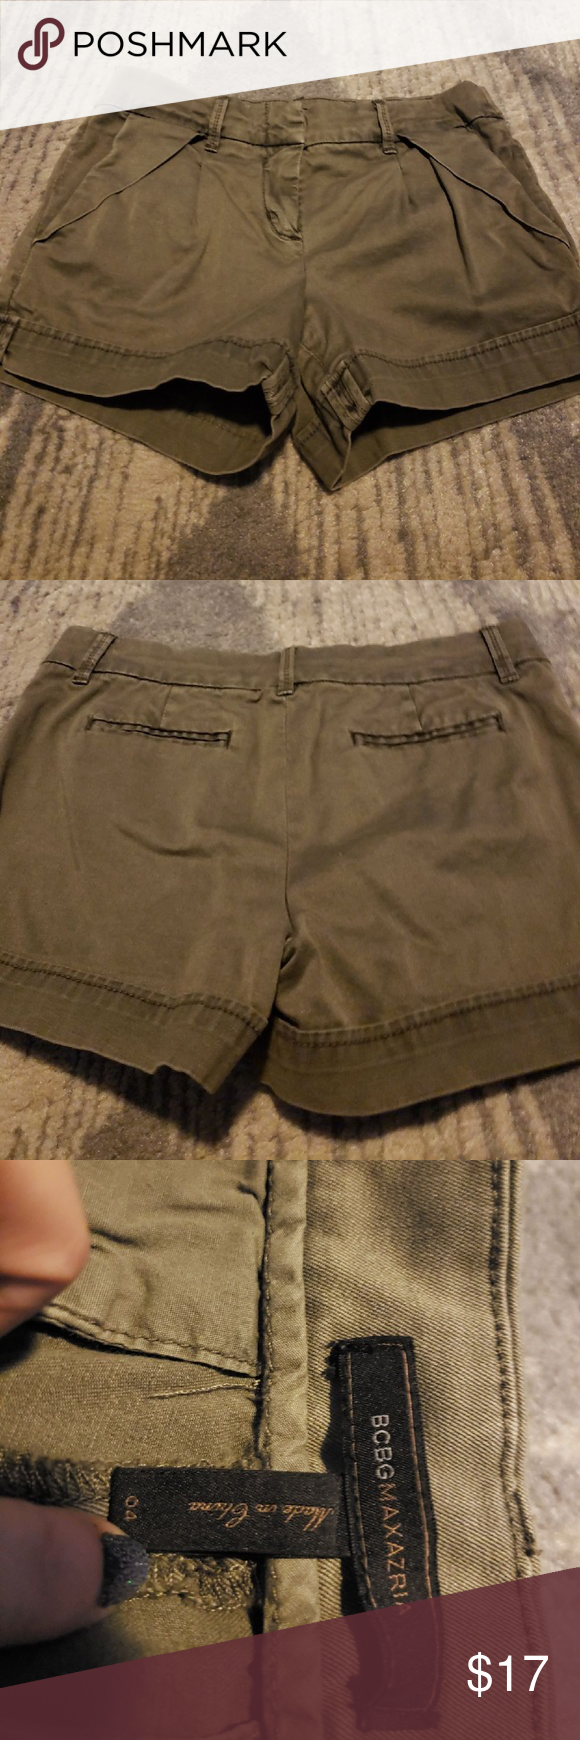 Bcbgmaxazria Olive Green Shorts, Size 4 Worn one time.  They just dont fit any more! BCBG size 4.  O...